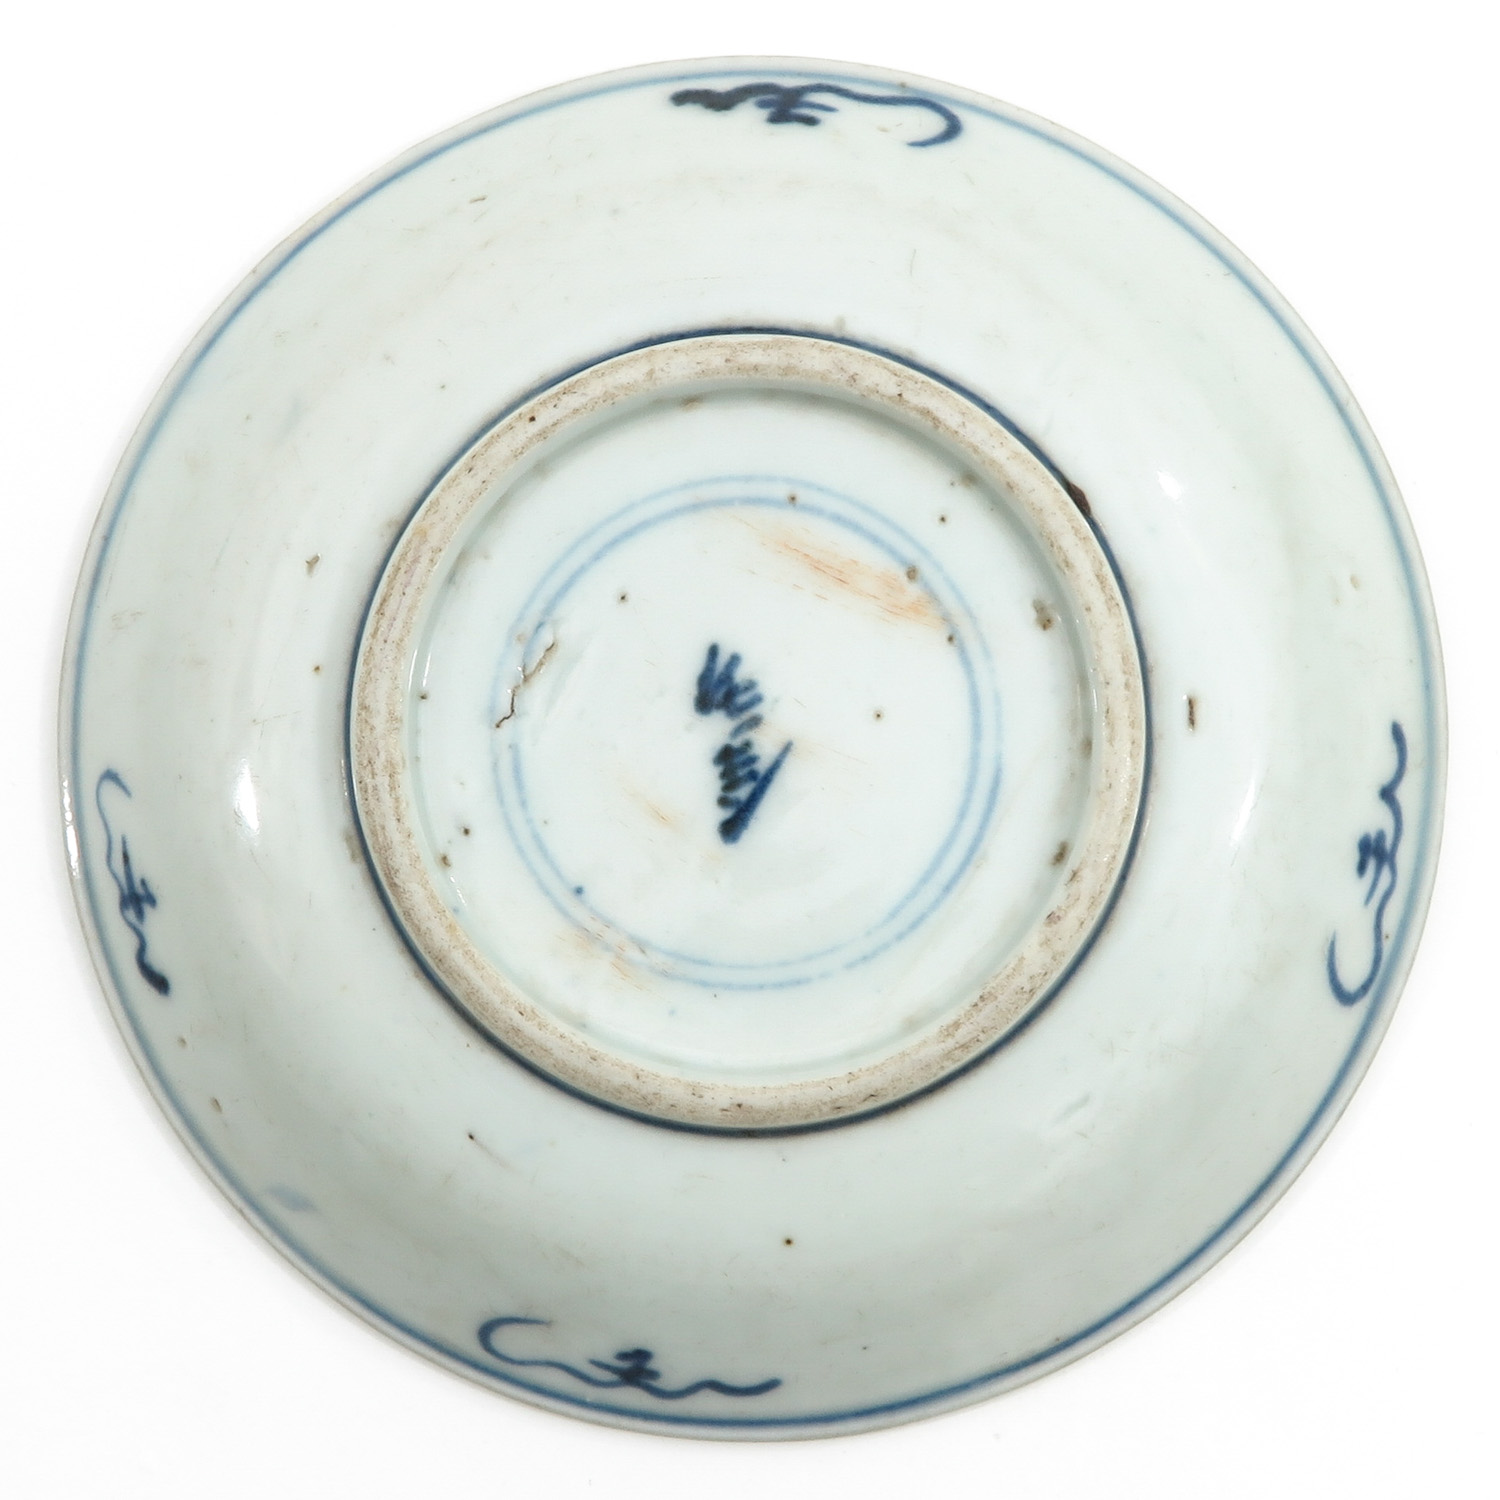 A Collection of 3 Plates - Image 8 of 10